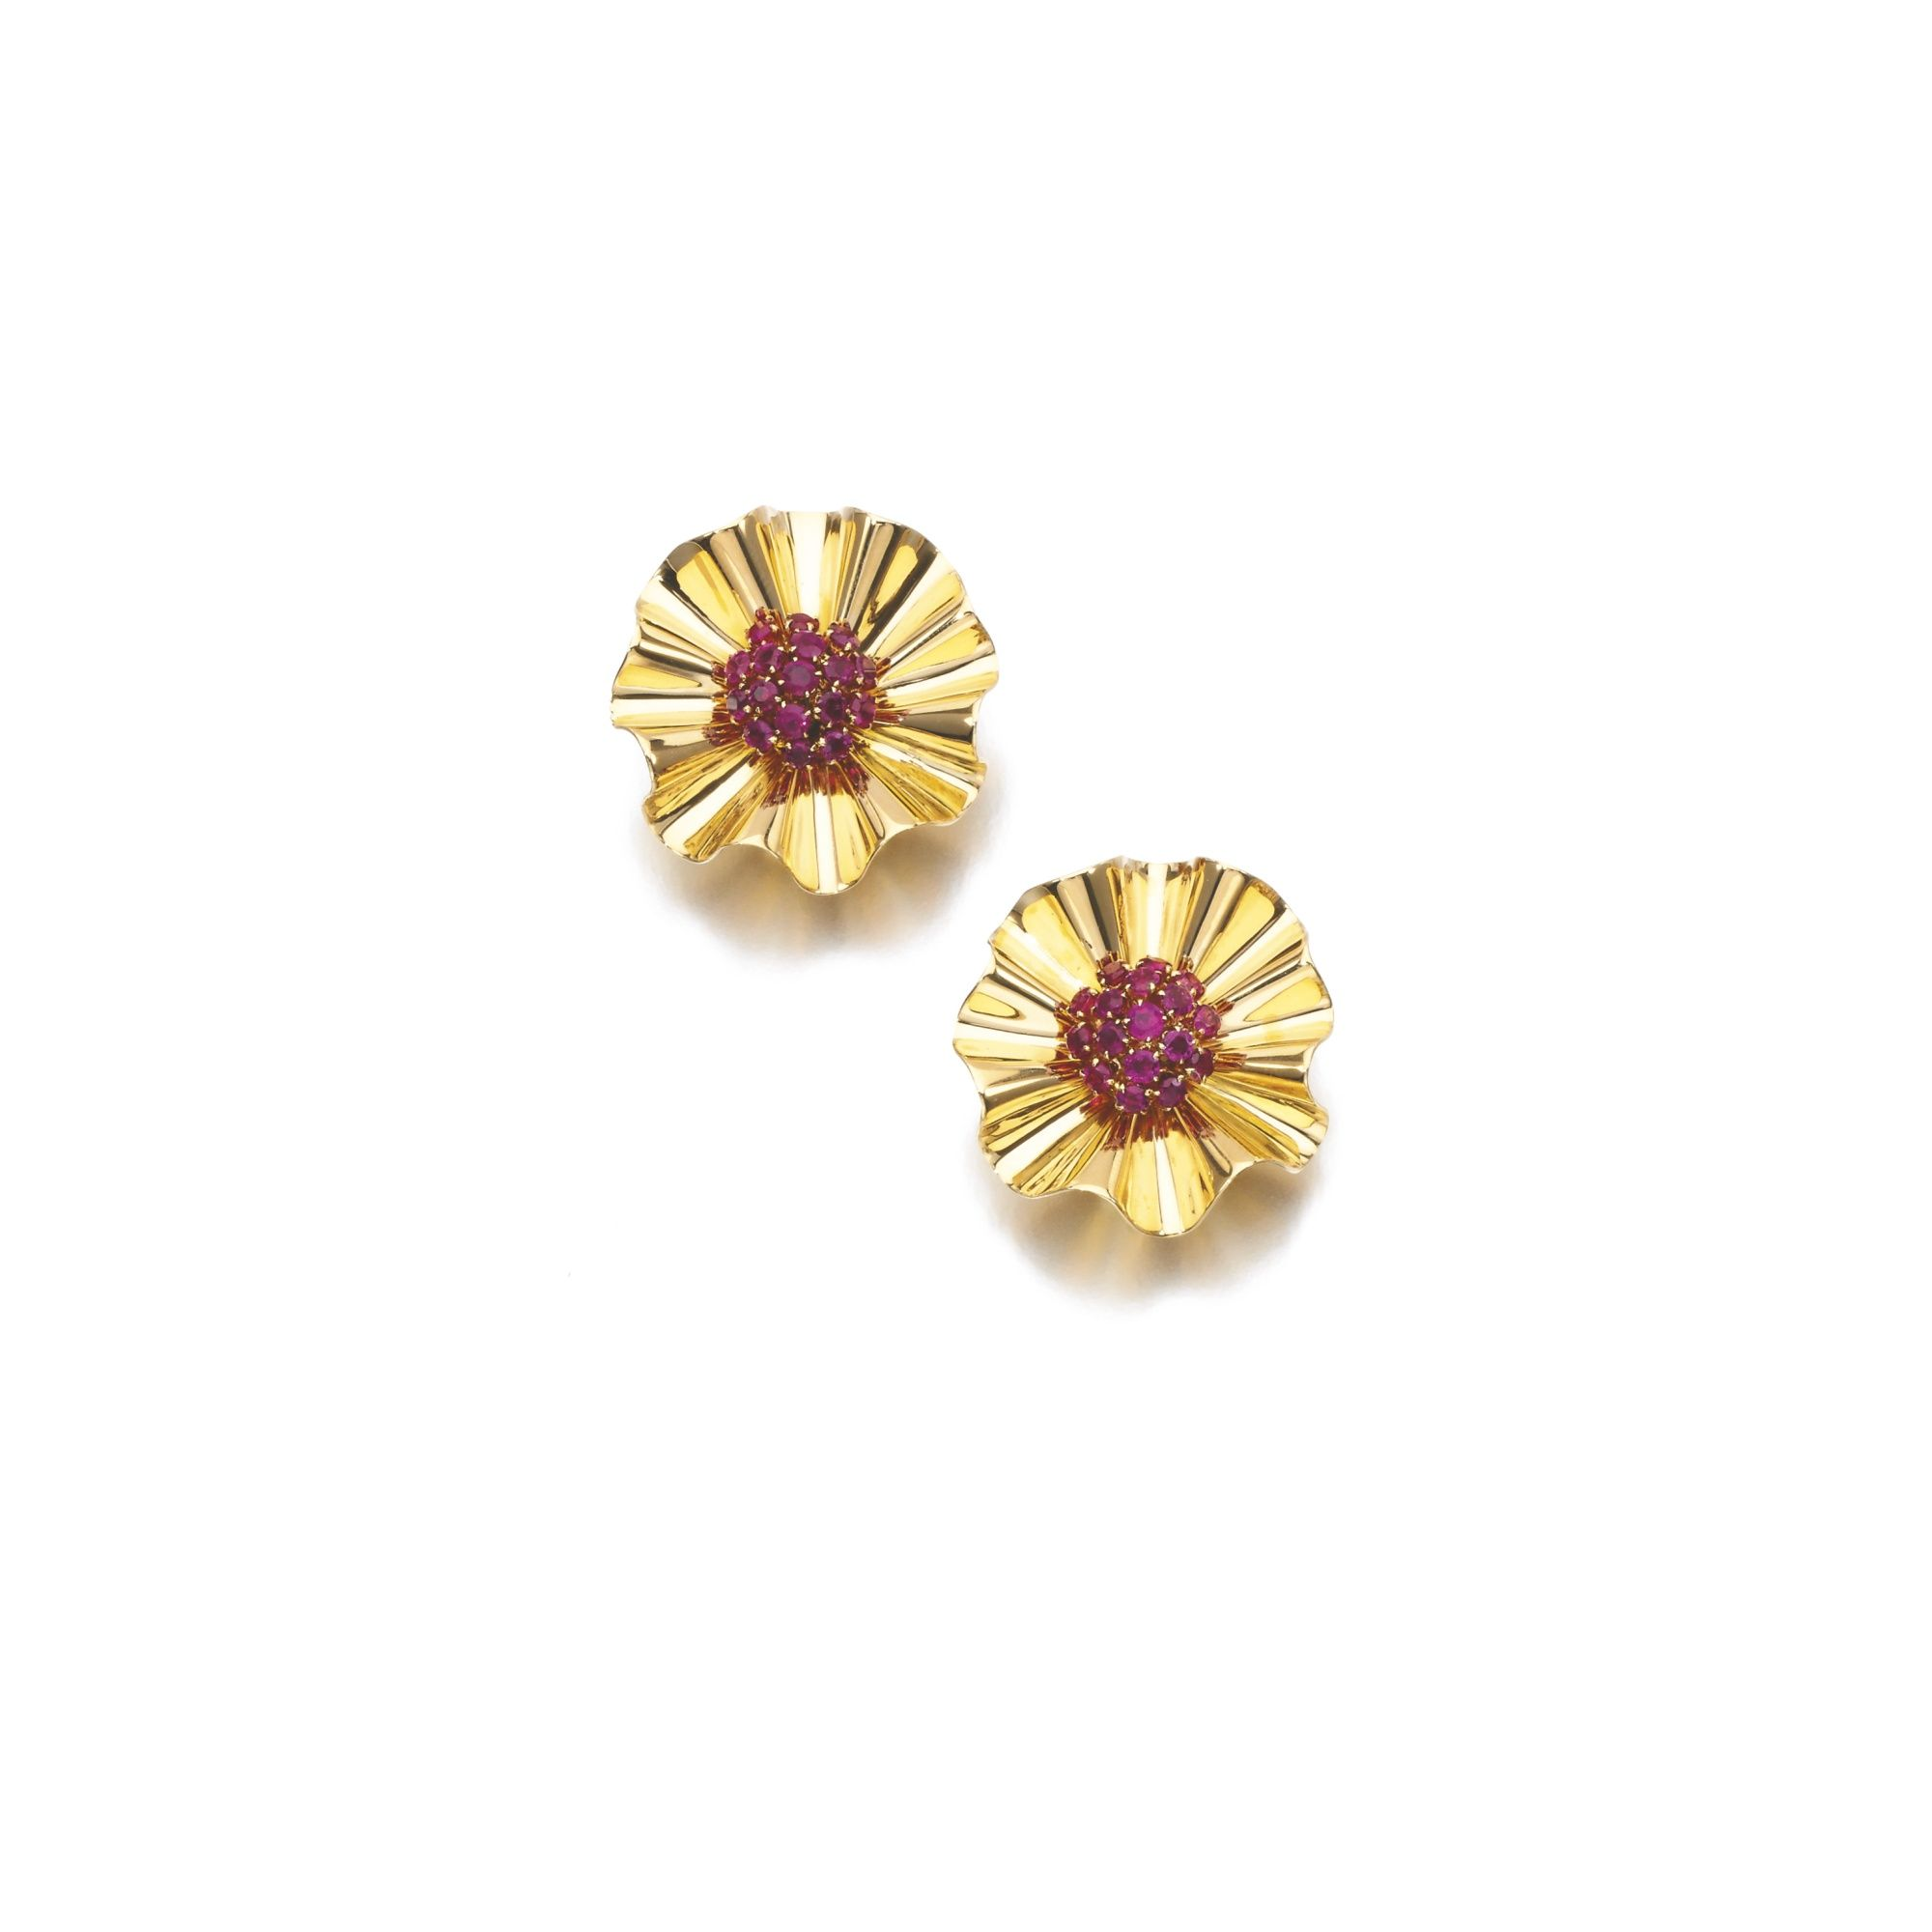 Van cleef amp arpels vca 18k yellow gold ruby cabochon amp diamond - Pair Of Ruby Dress Ear Clips Van Cleef Arpels 1940s Lot